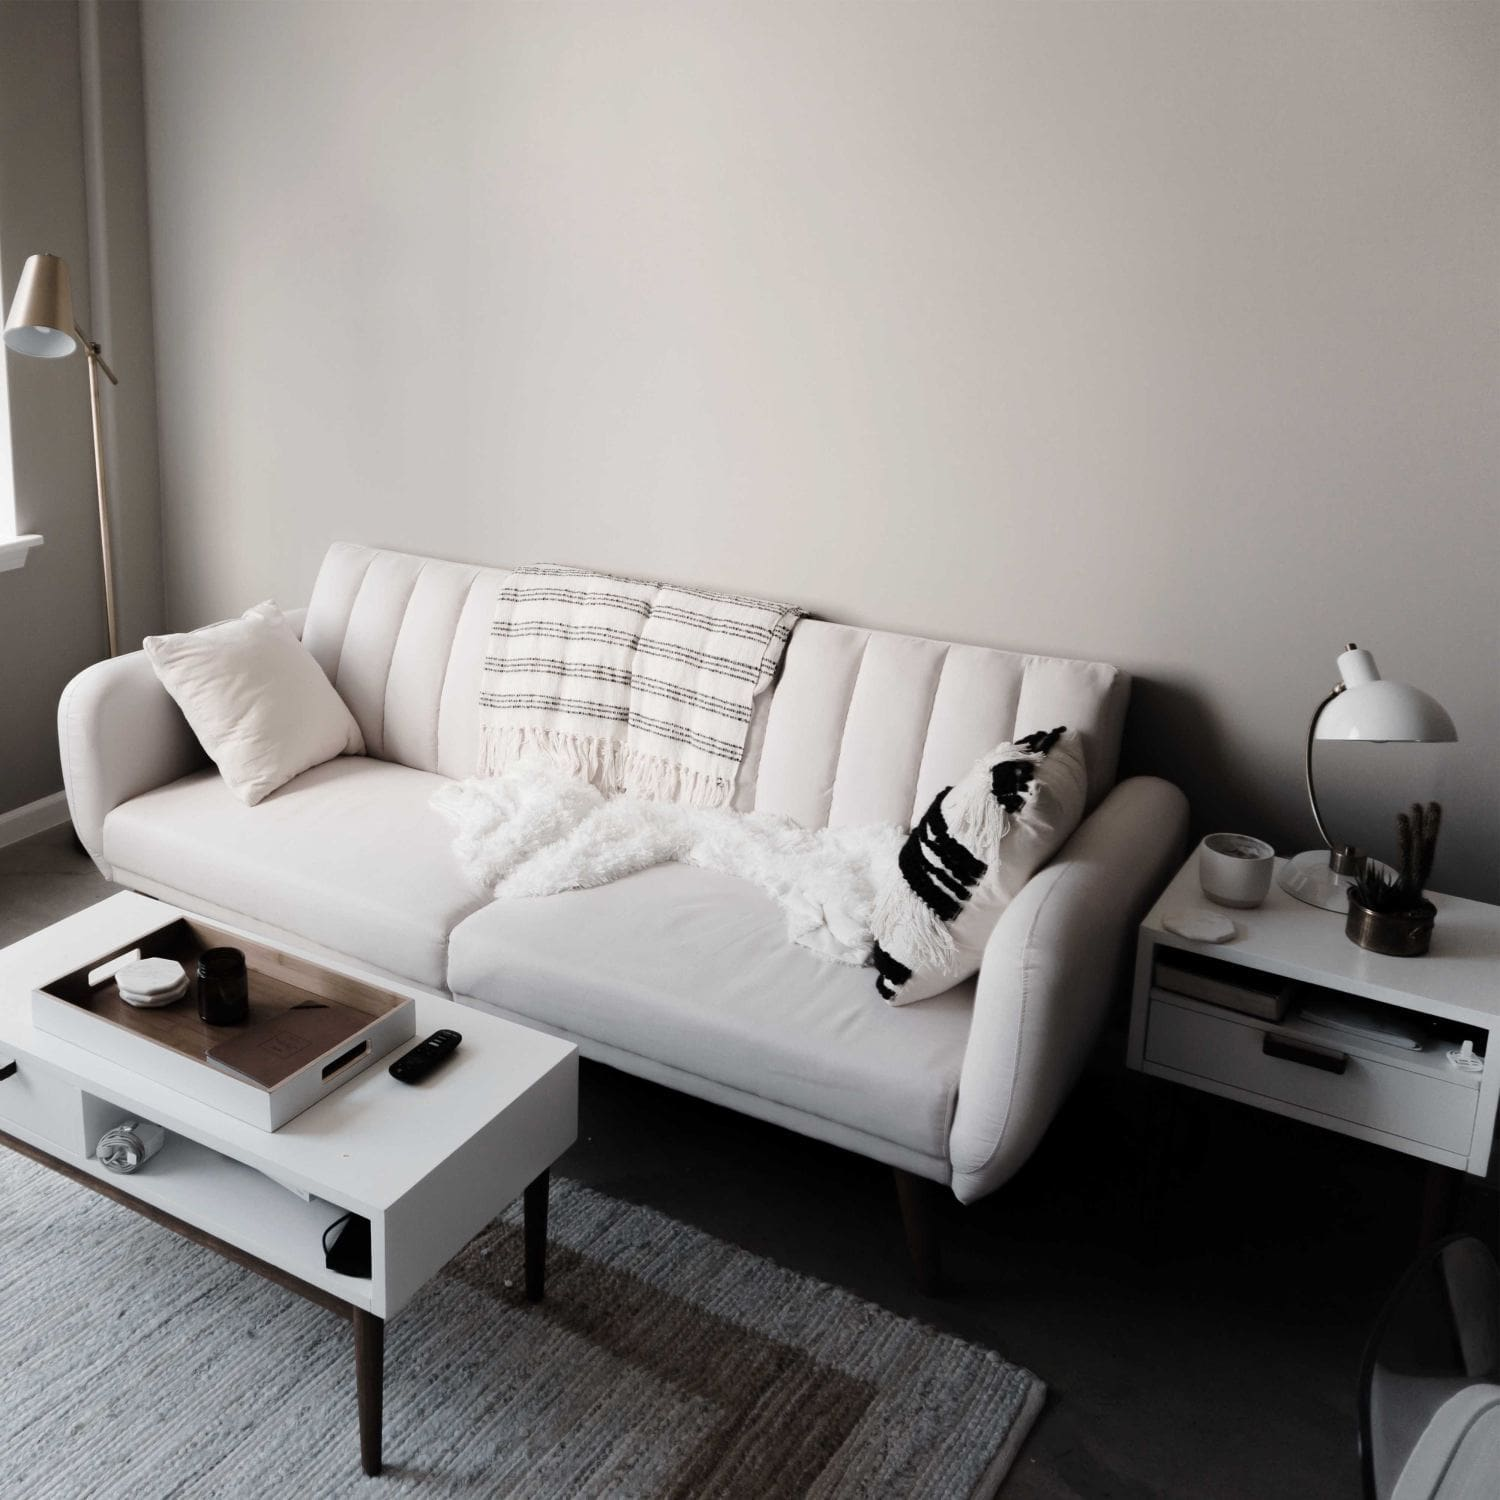 Scandinavian Interiors: Simplicity Cherished By Indians